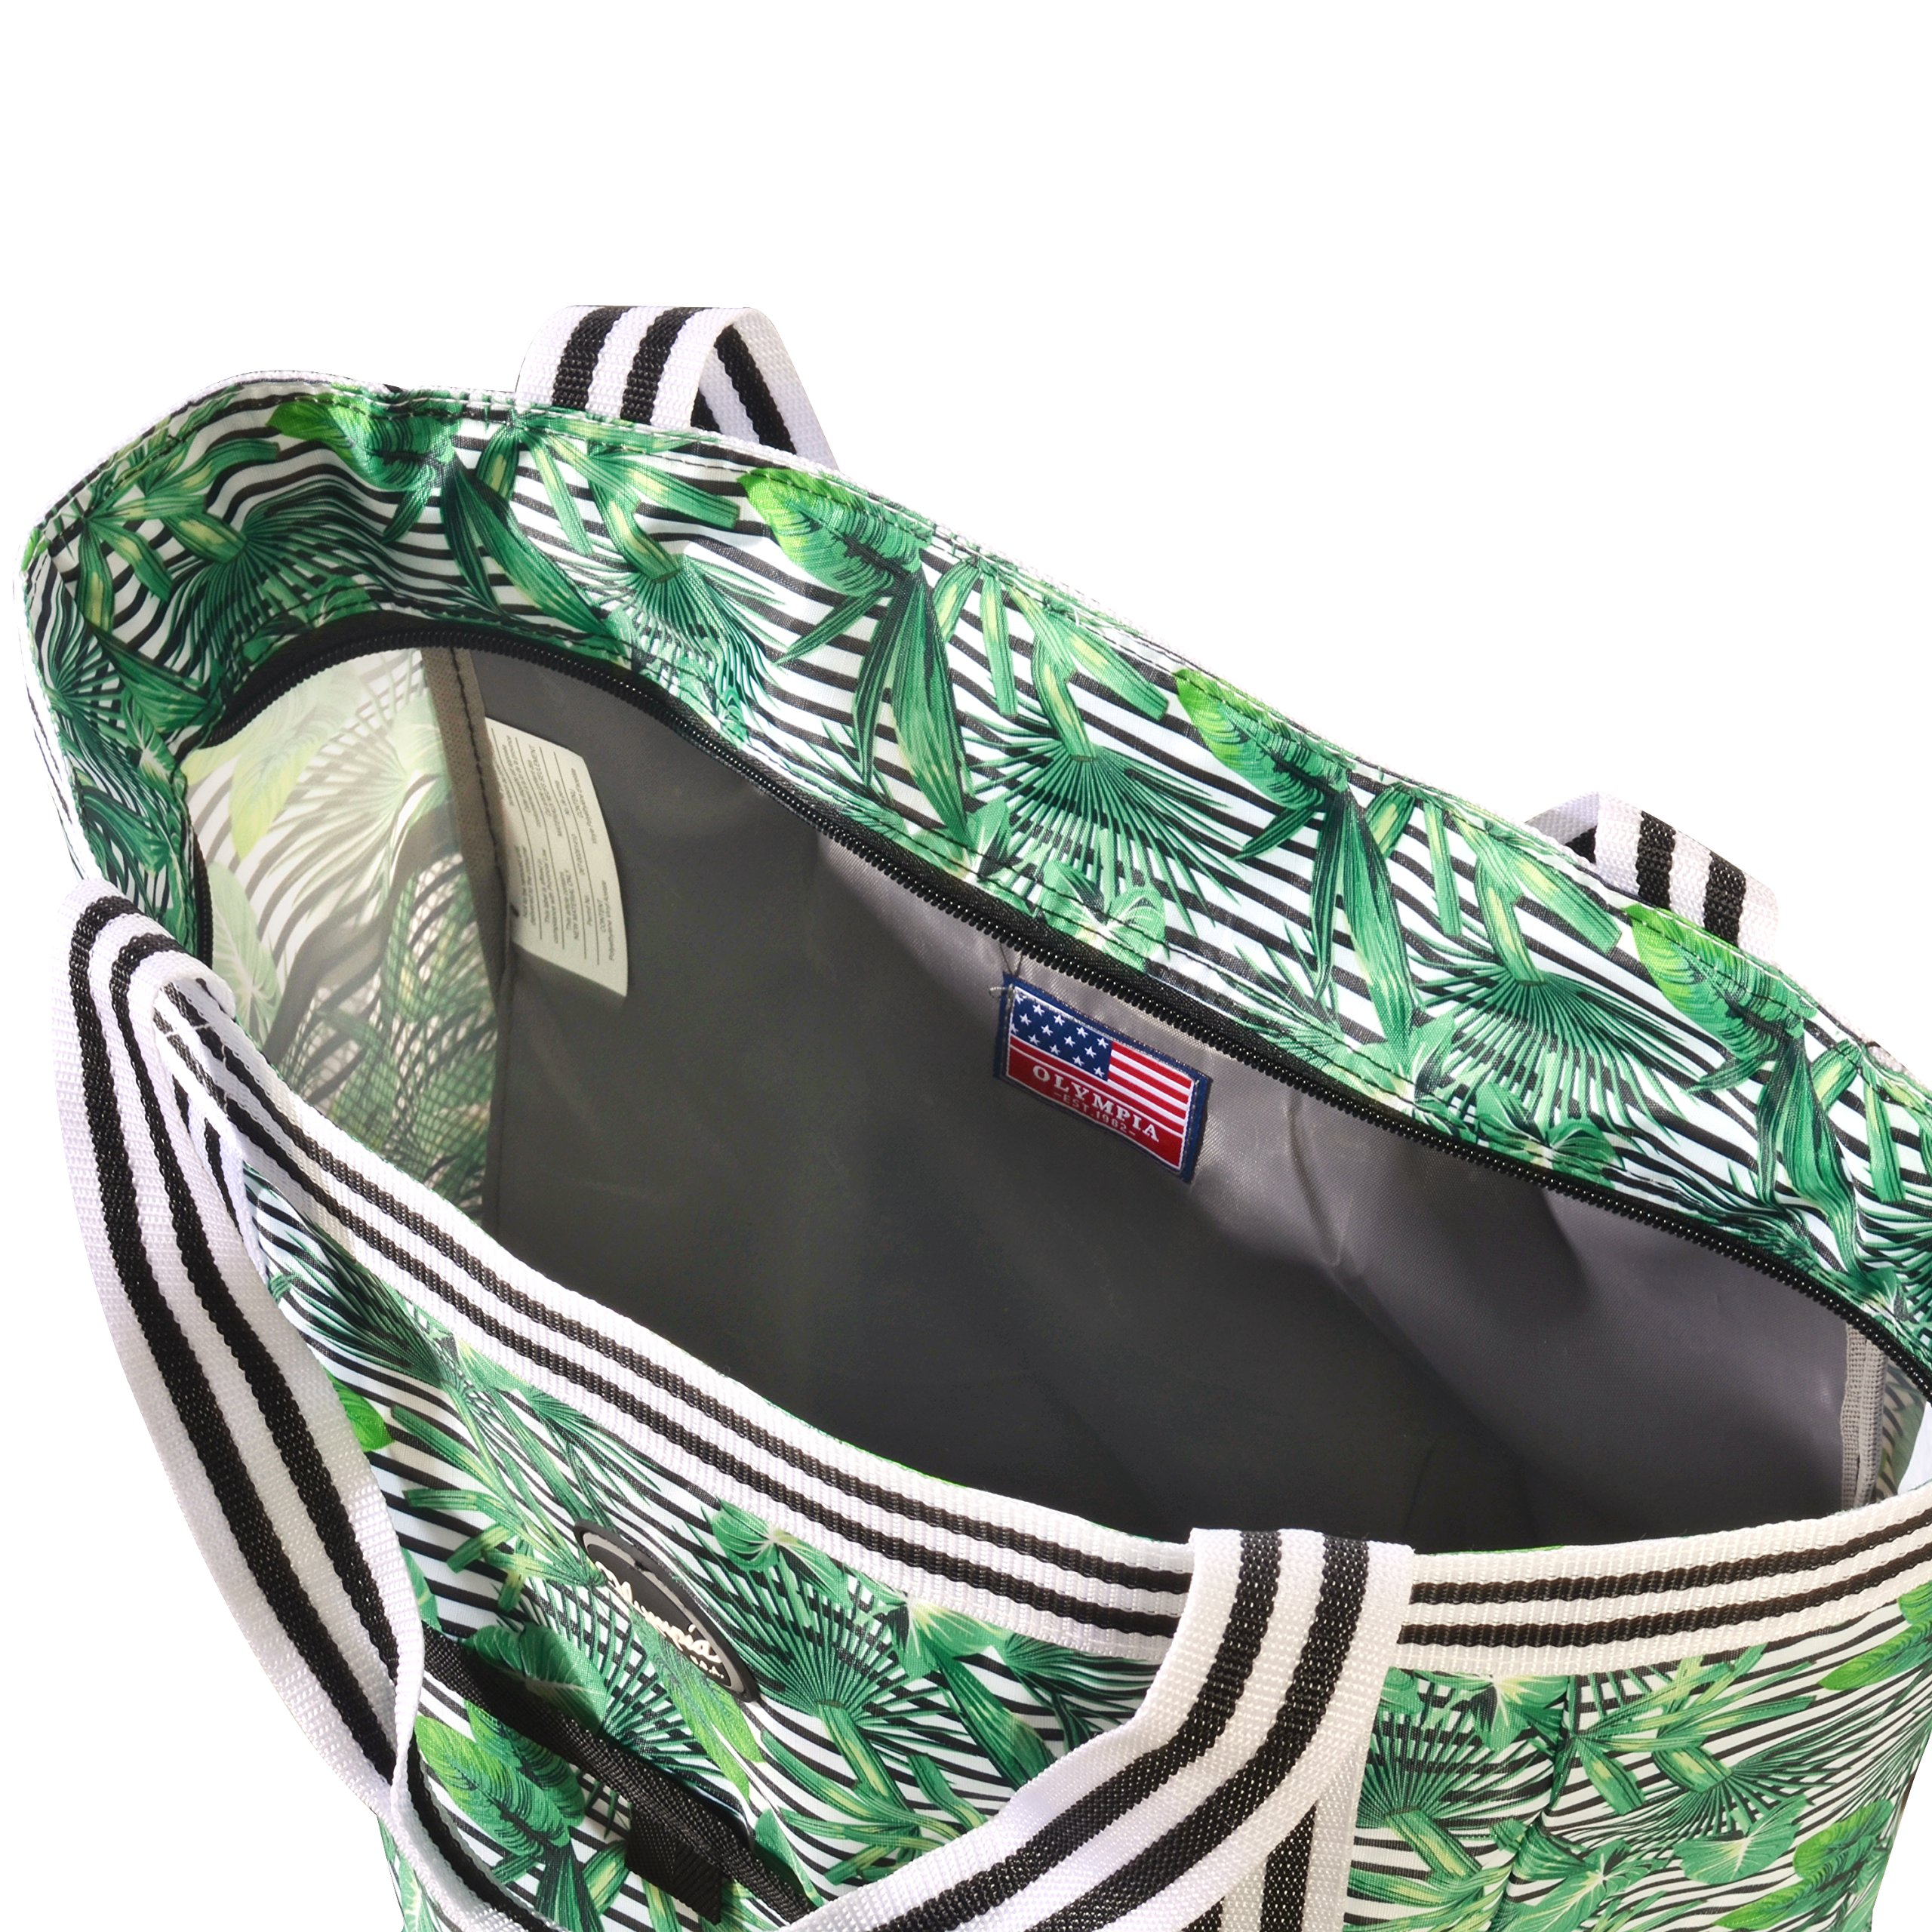 Olympia 2-Piece Rolling Shopper Tote and Cooler Bag, Rain Forest by Olympia (Image #6)